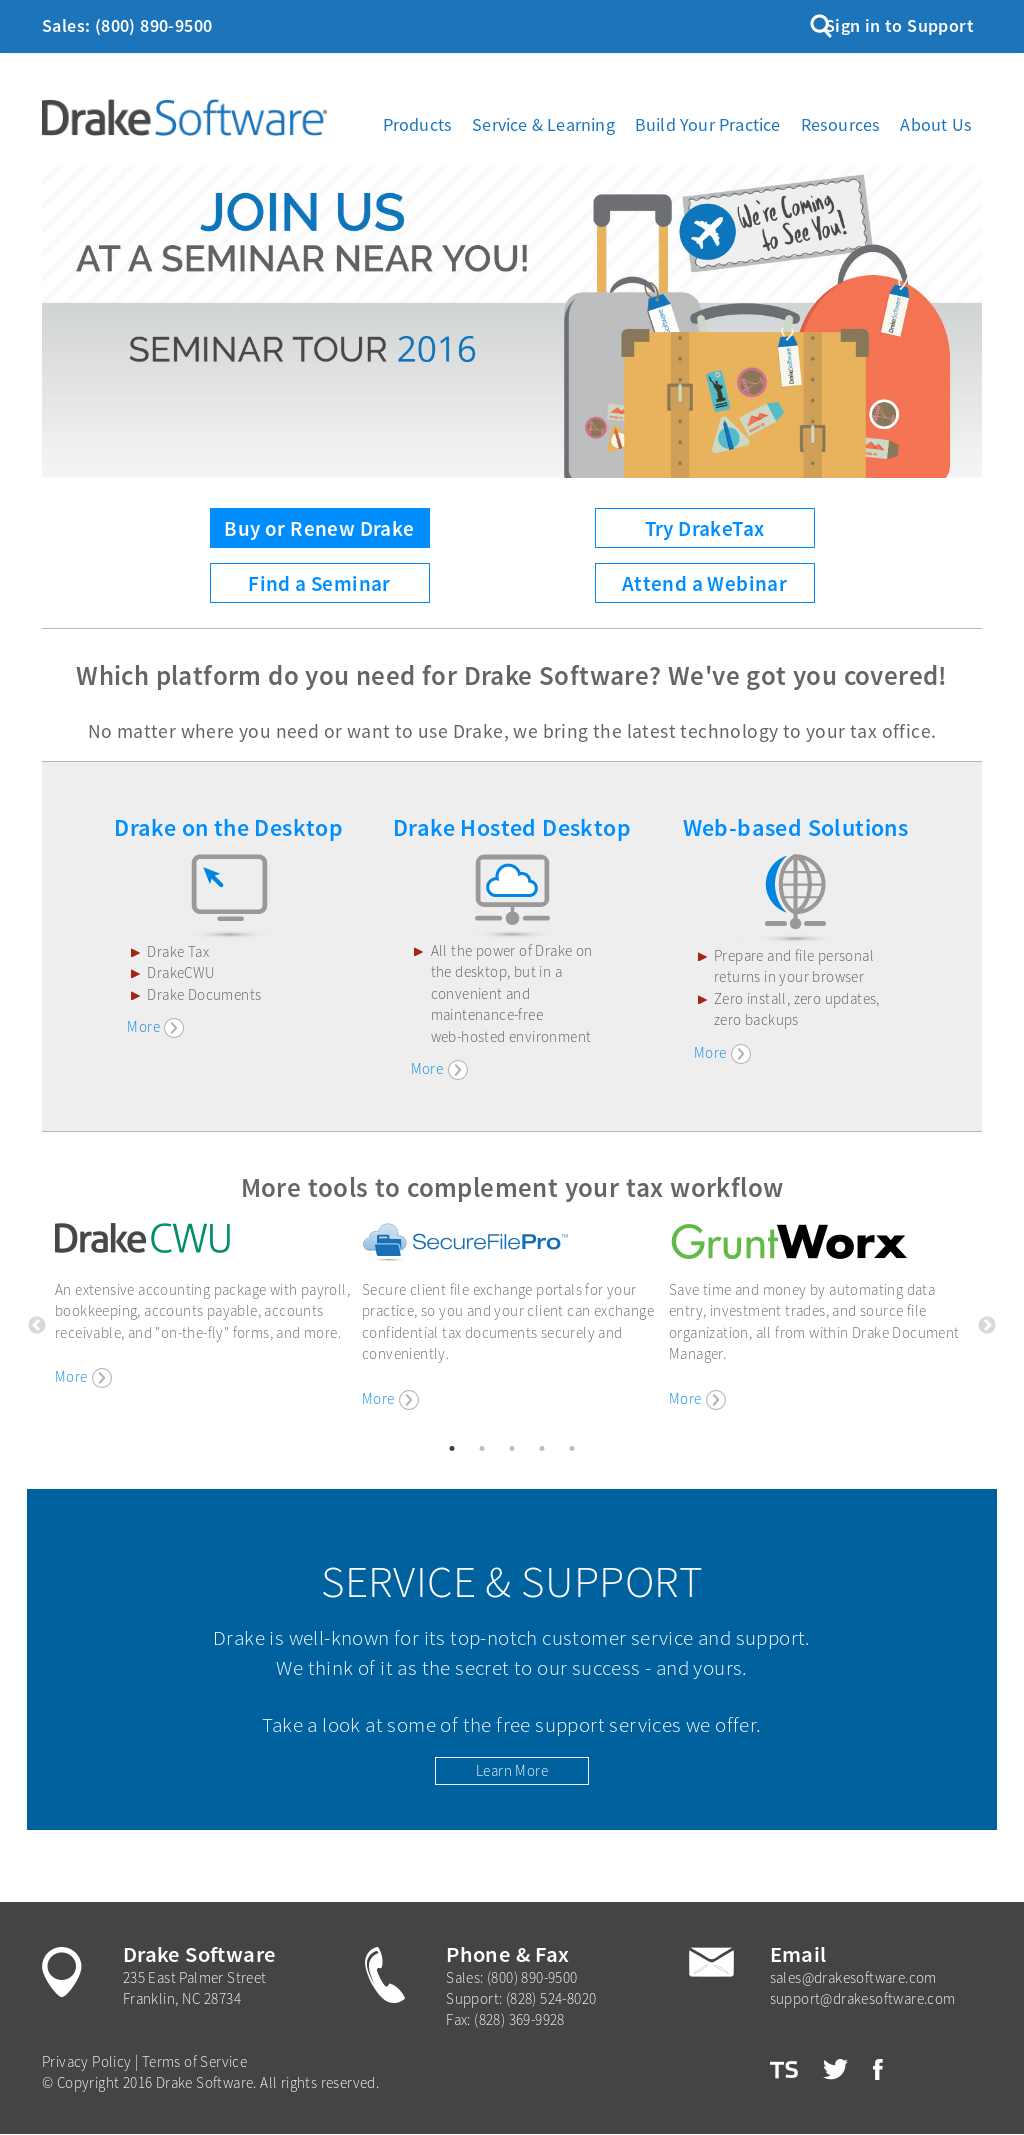 Drake Software Competitors, Revenue and Employees - Owler Company